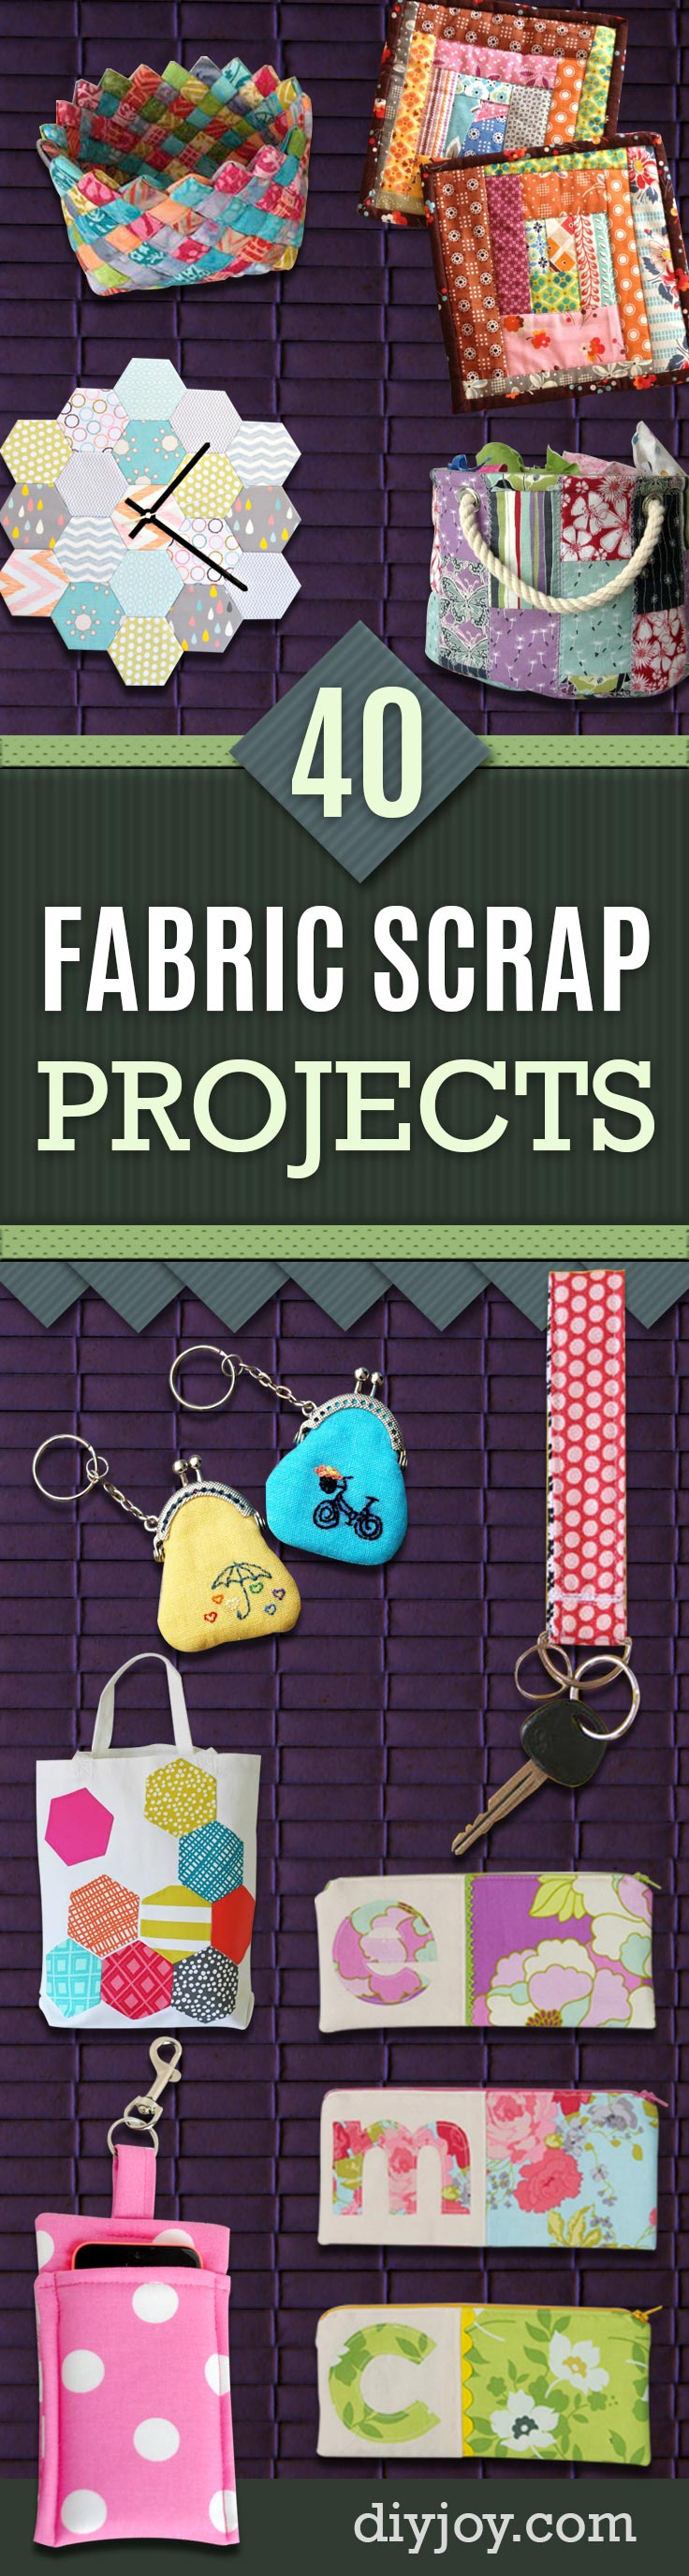 Cool Crafts You Can Make With Fabric Scraps - Creative DIY Sewing Projects and Things to Do With Leftover Fabric - Ideas, Tutorials and Patterns